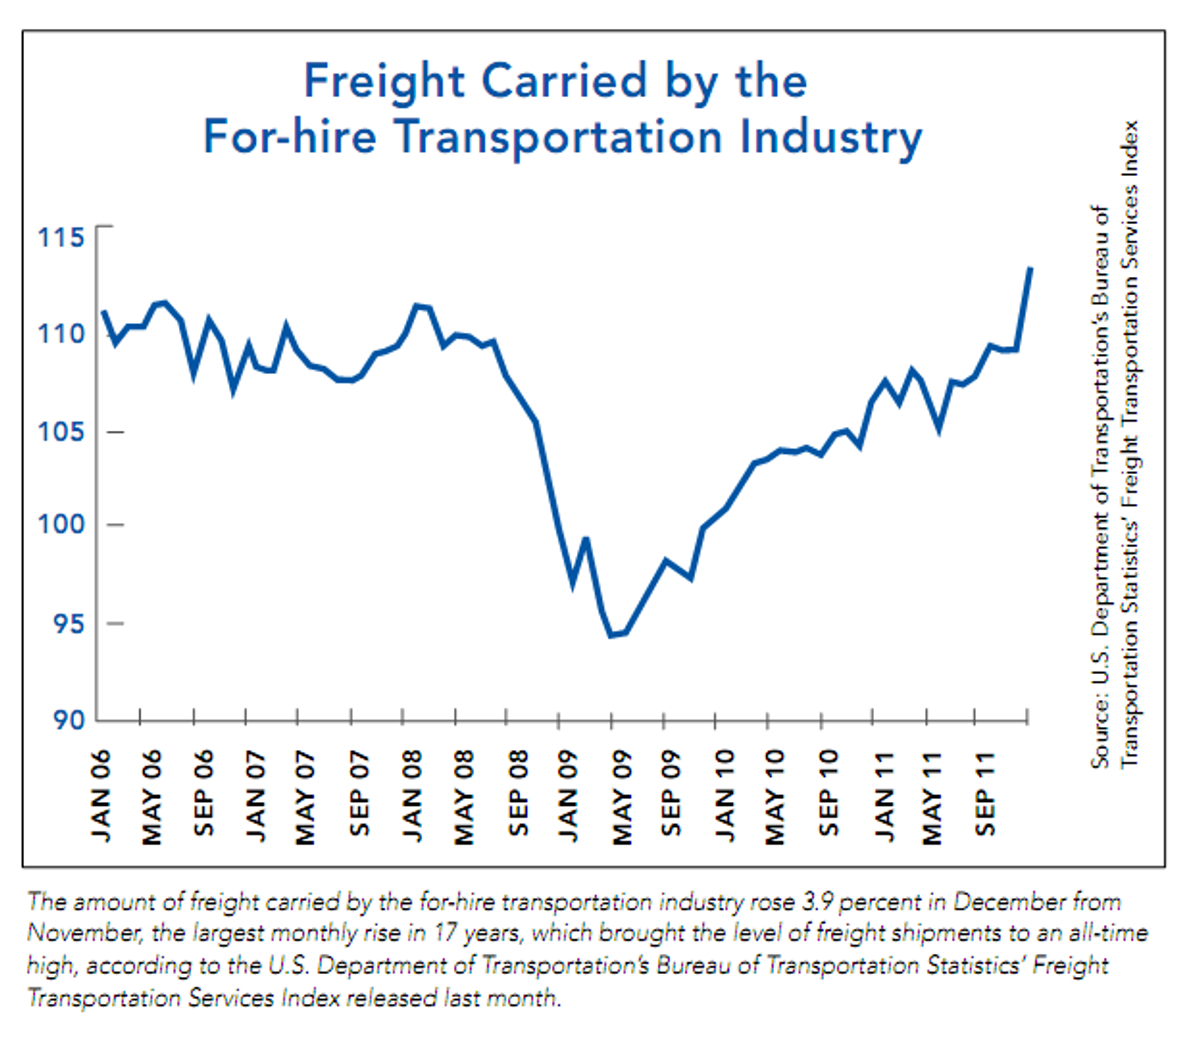 Freight Levels on the Rise